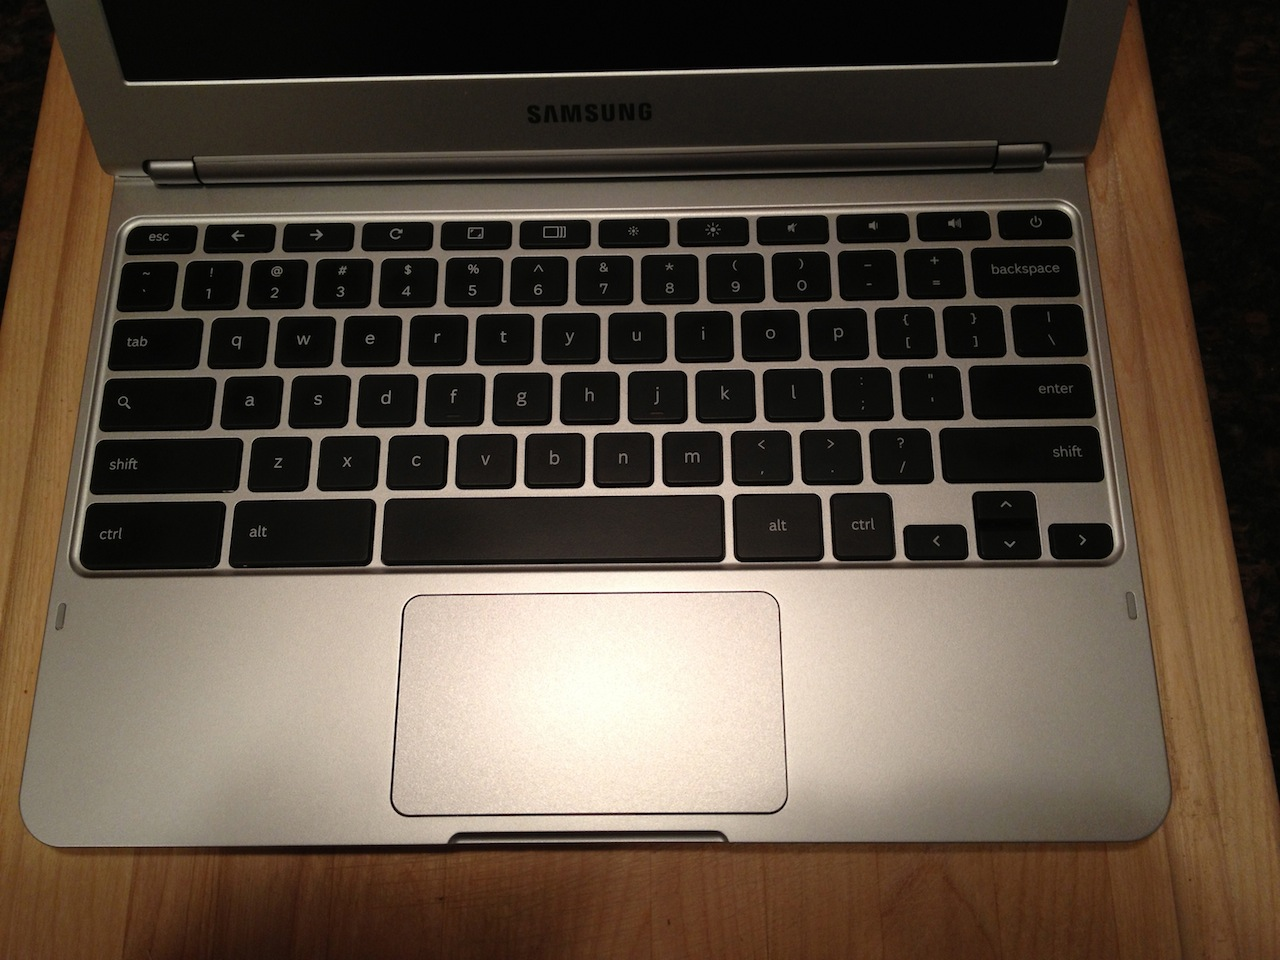 The Chromebook's keyboard and trackpad.